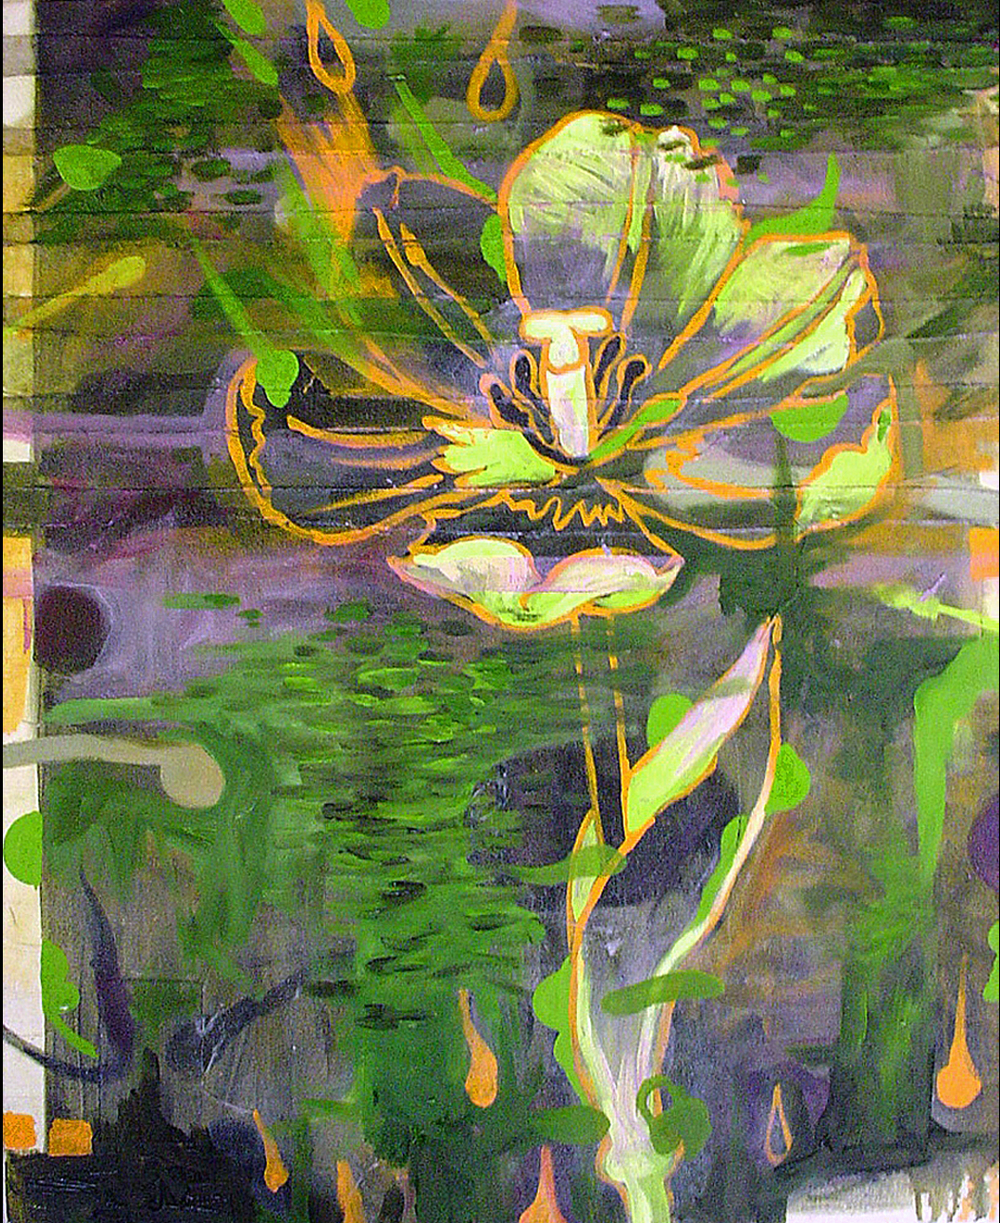 "Green Tulip    Oil and Beeswax on Canvas 34"" x 28""  2003"